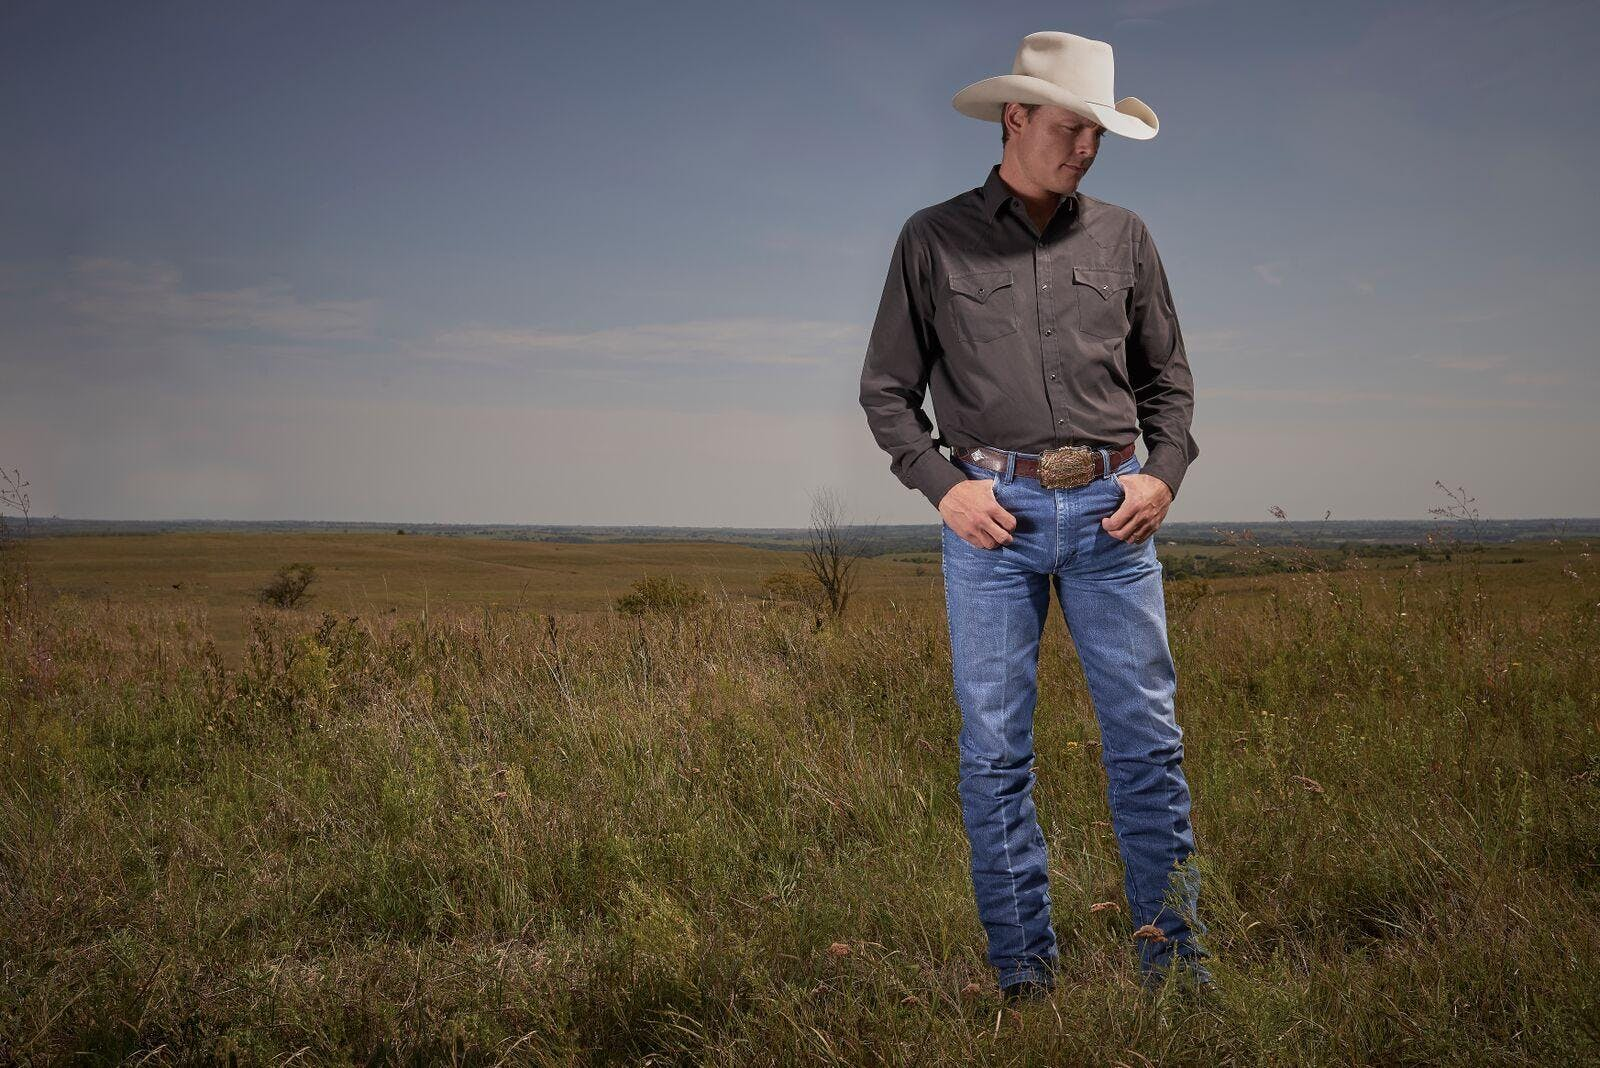 WYO Country Fest Summer Concert Series featuring Ned Ledoux